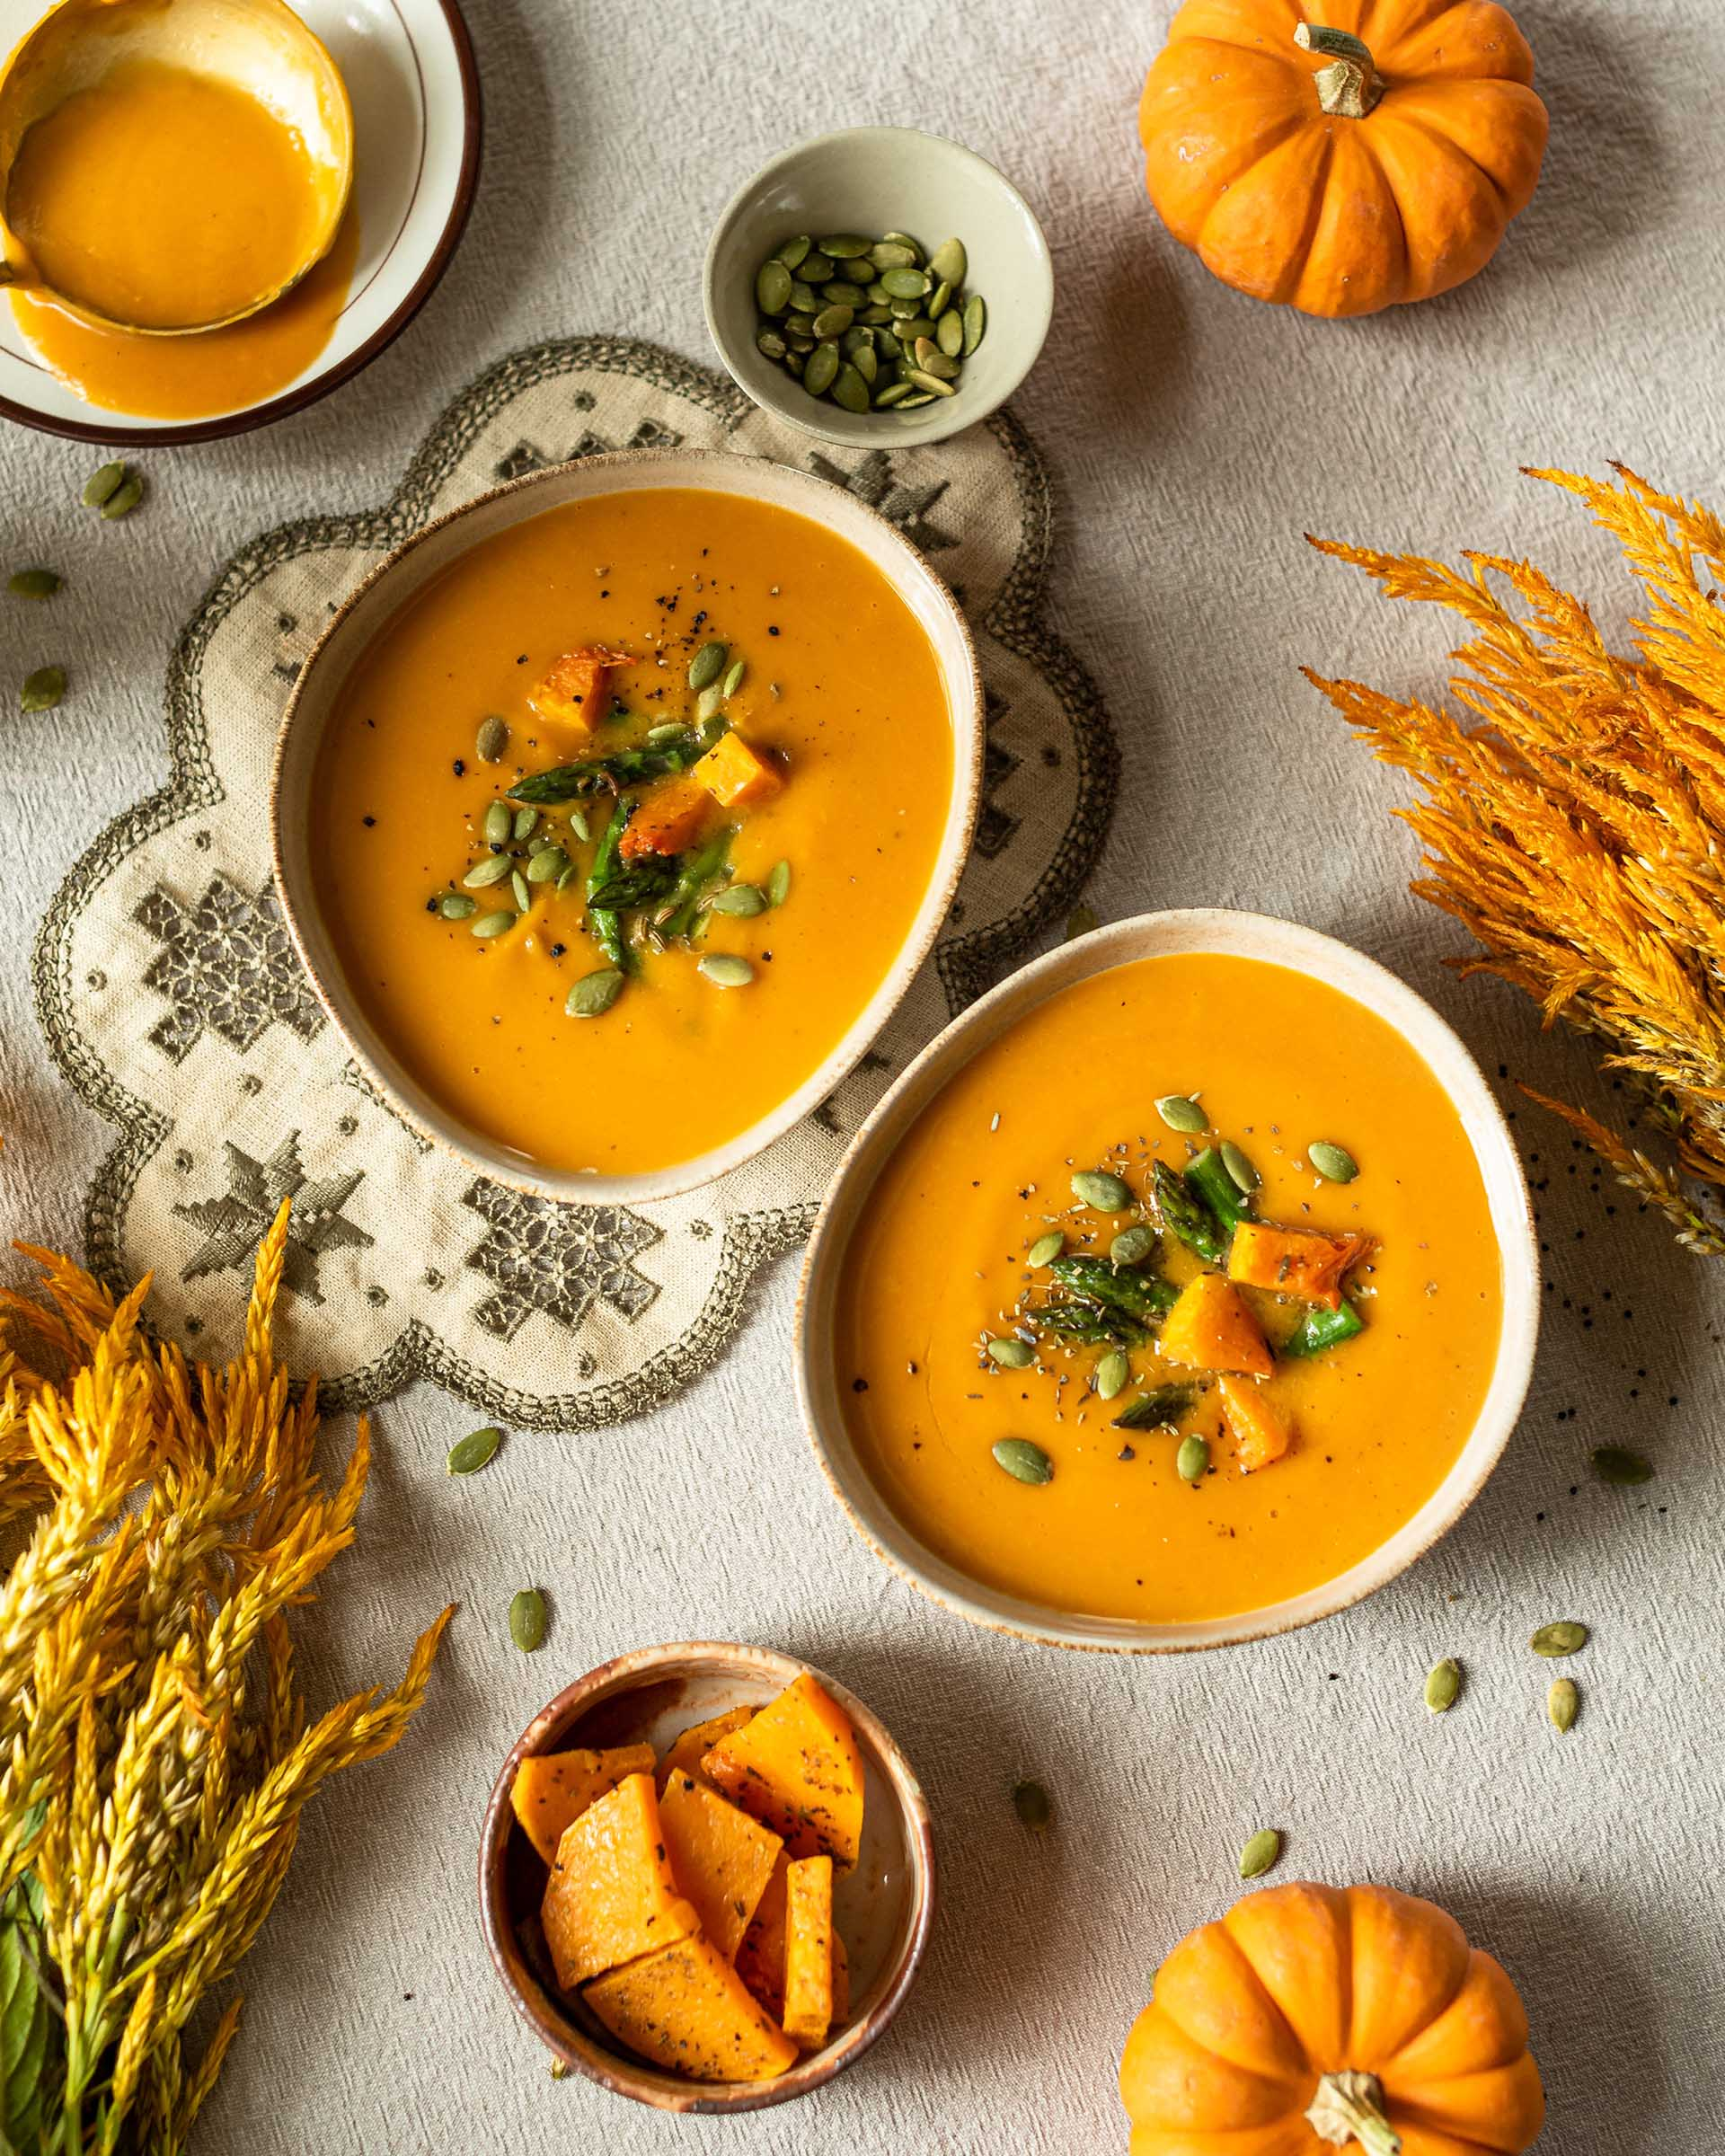 Galina Afanaseva - Pumpkin soup with pumpkin seeds from Foodiesfeed